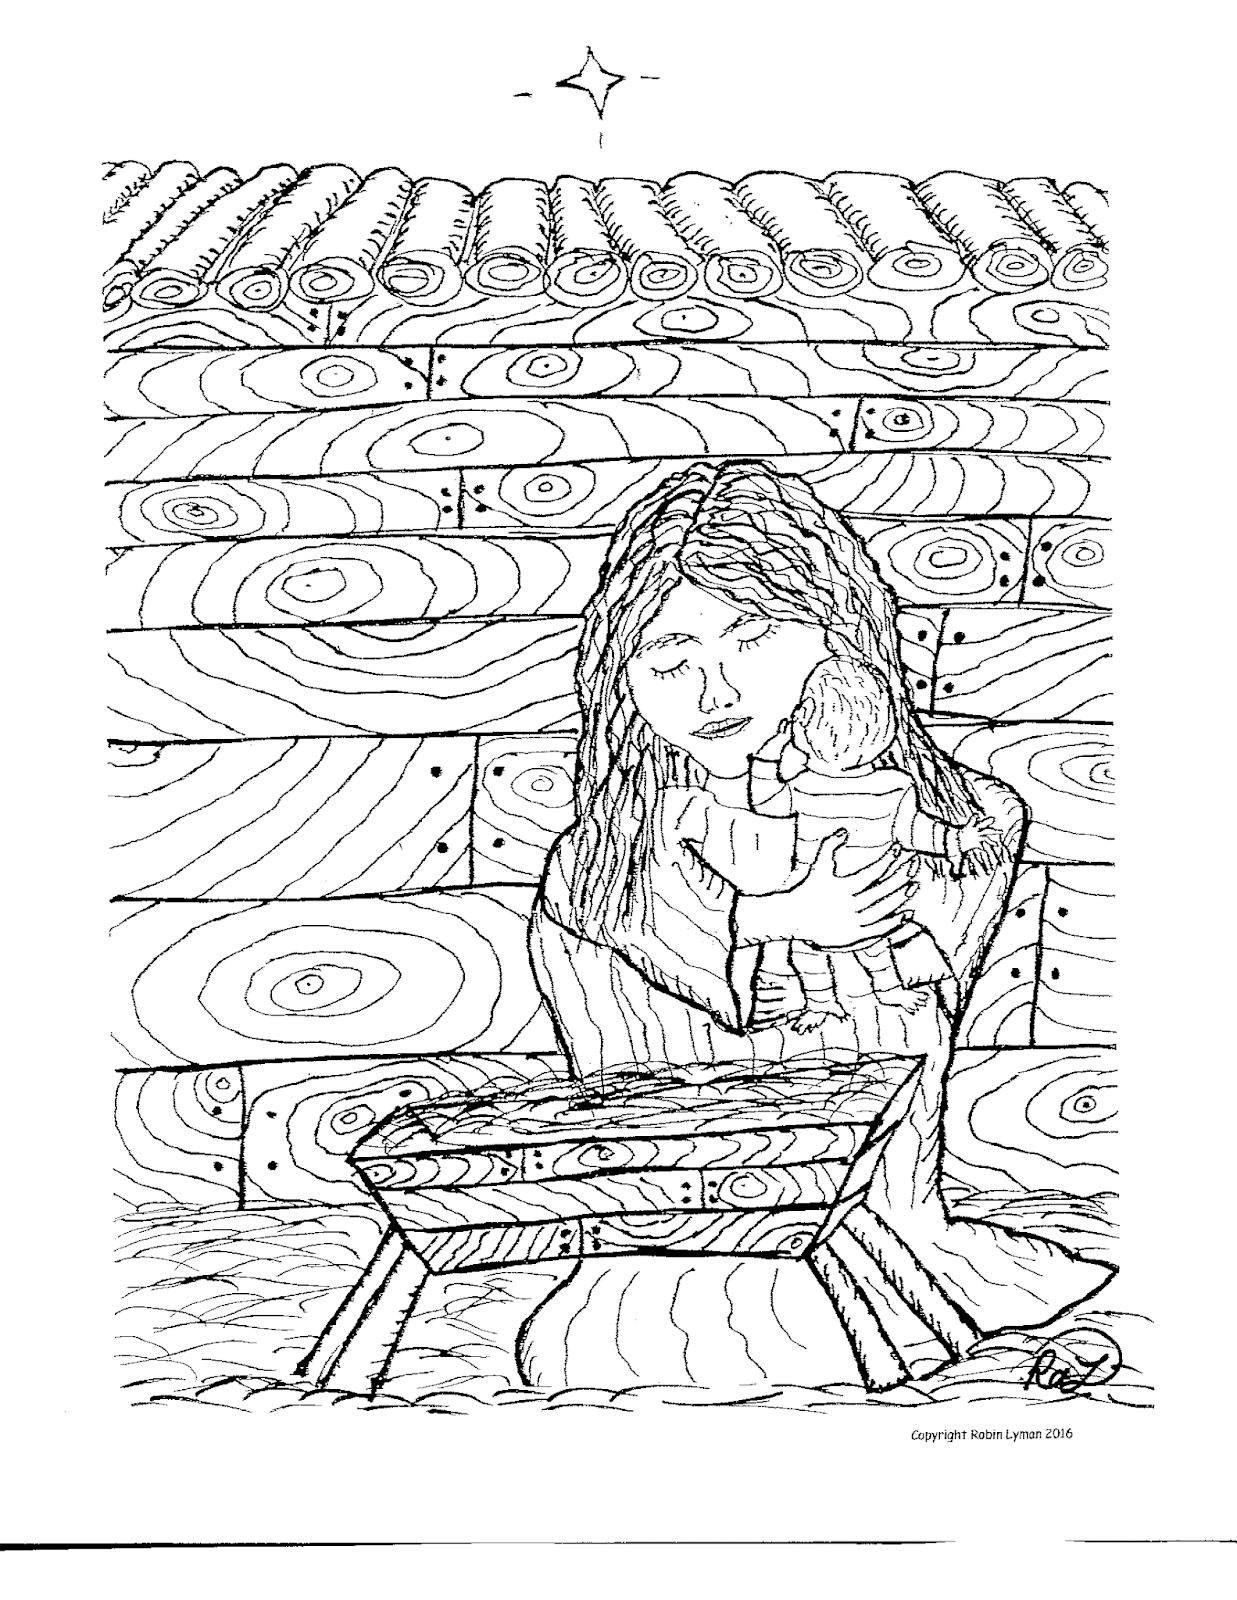 Robin\'s Great Coloring Pages: Phoenix Religious Significance